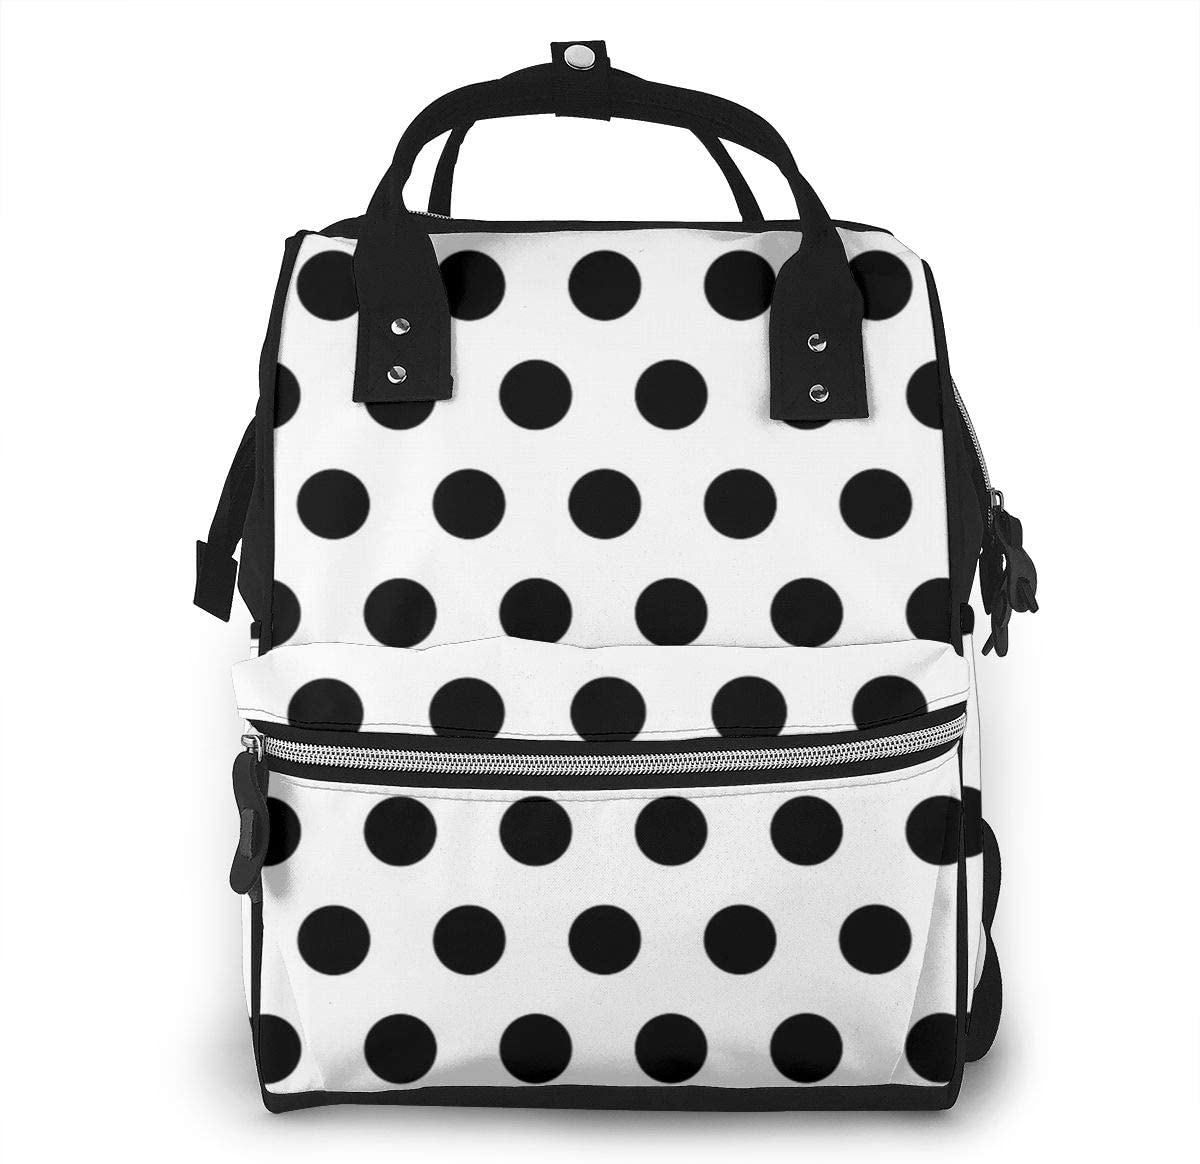 NiYoung Diaper Bag Backpack,Stylish Baby Nappy Bags for Mom and Dad,Waterproof,Multi-Function Travel Back Pack for Boys and Girls,Large Capacity and Durable,Black Polka Dot Pattern